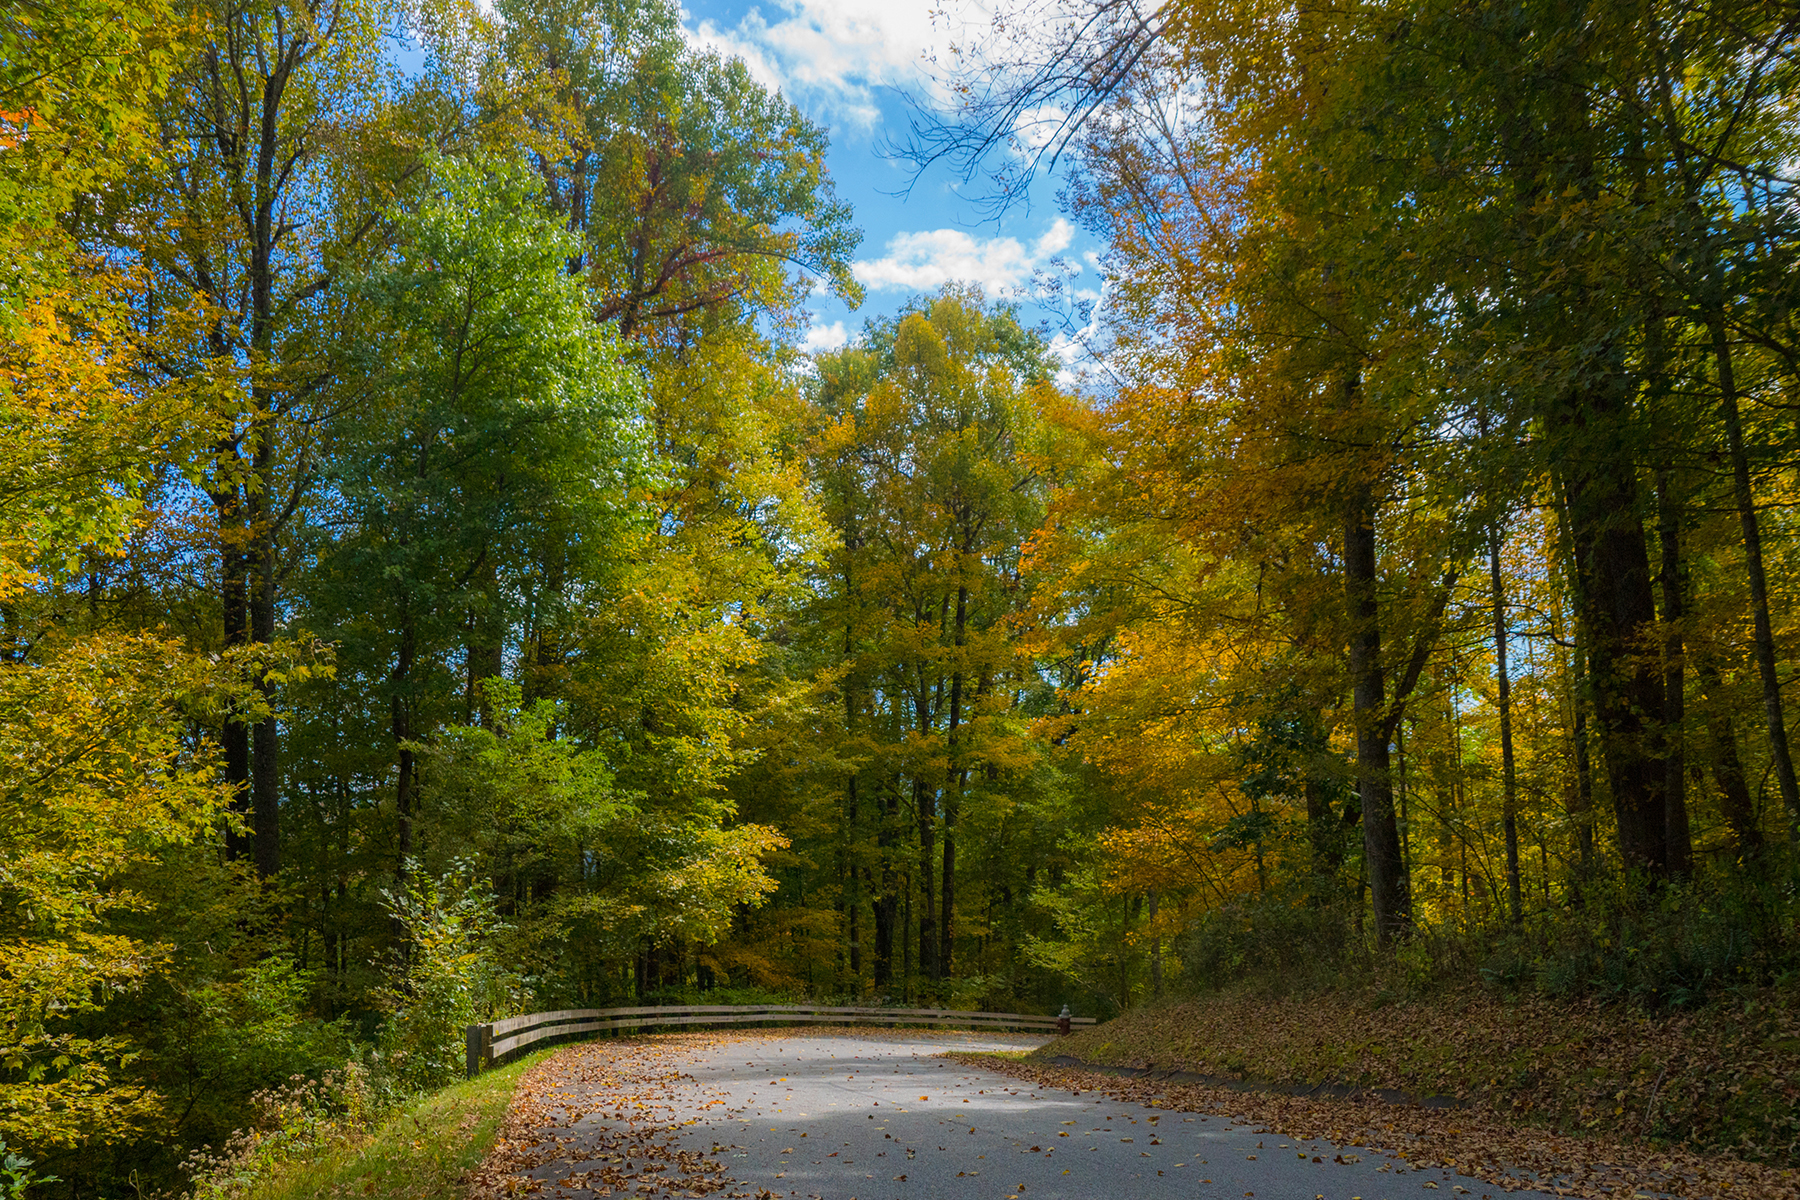 Land for Sale at BOONE - COUNCILL OAKS Lot 46 Fire Pink Rd Boone, North Carolina 28607 United States